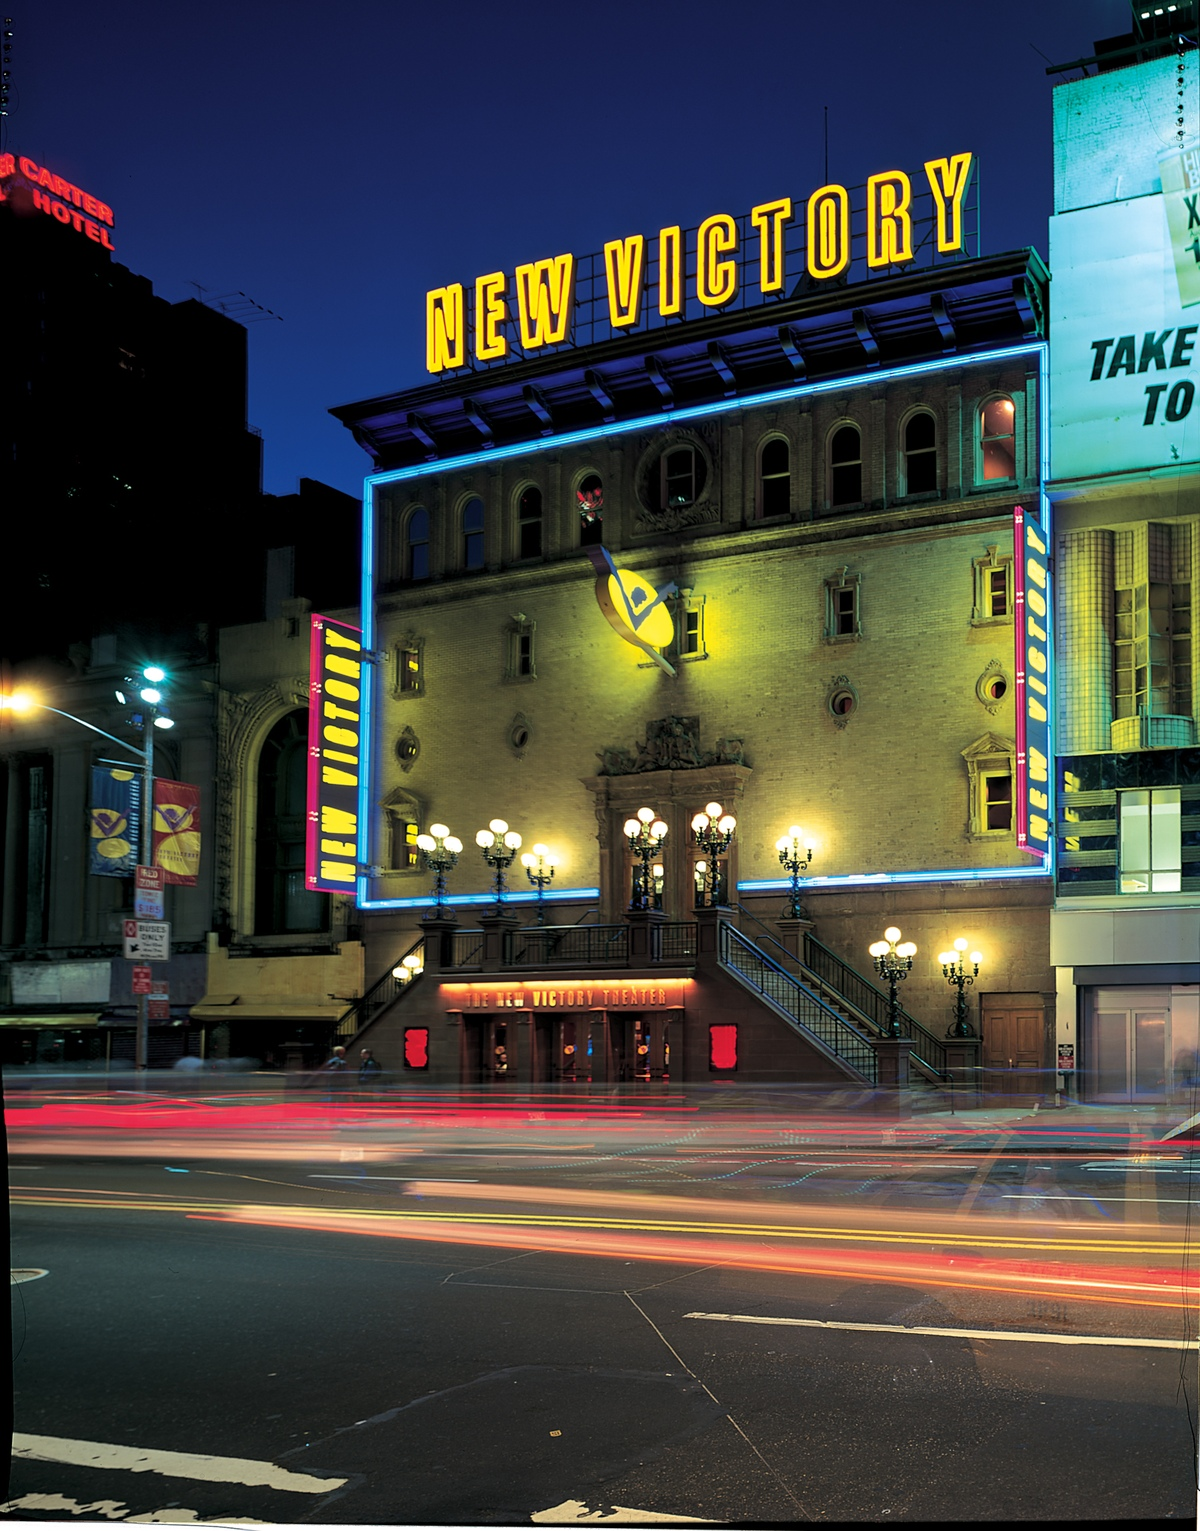 New 42nd Street Corporation, New Victory Theater Signage